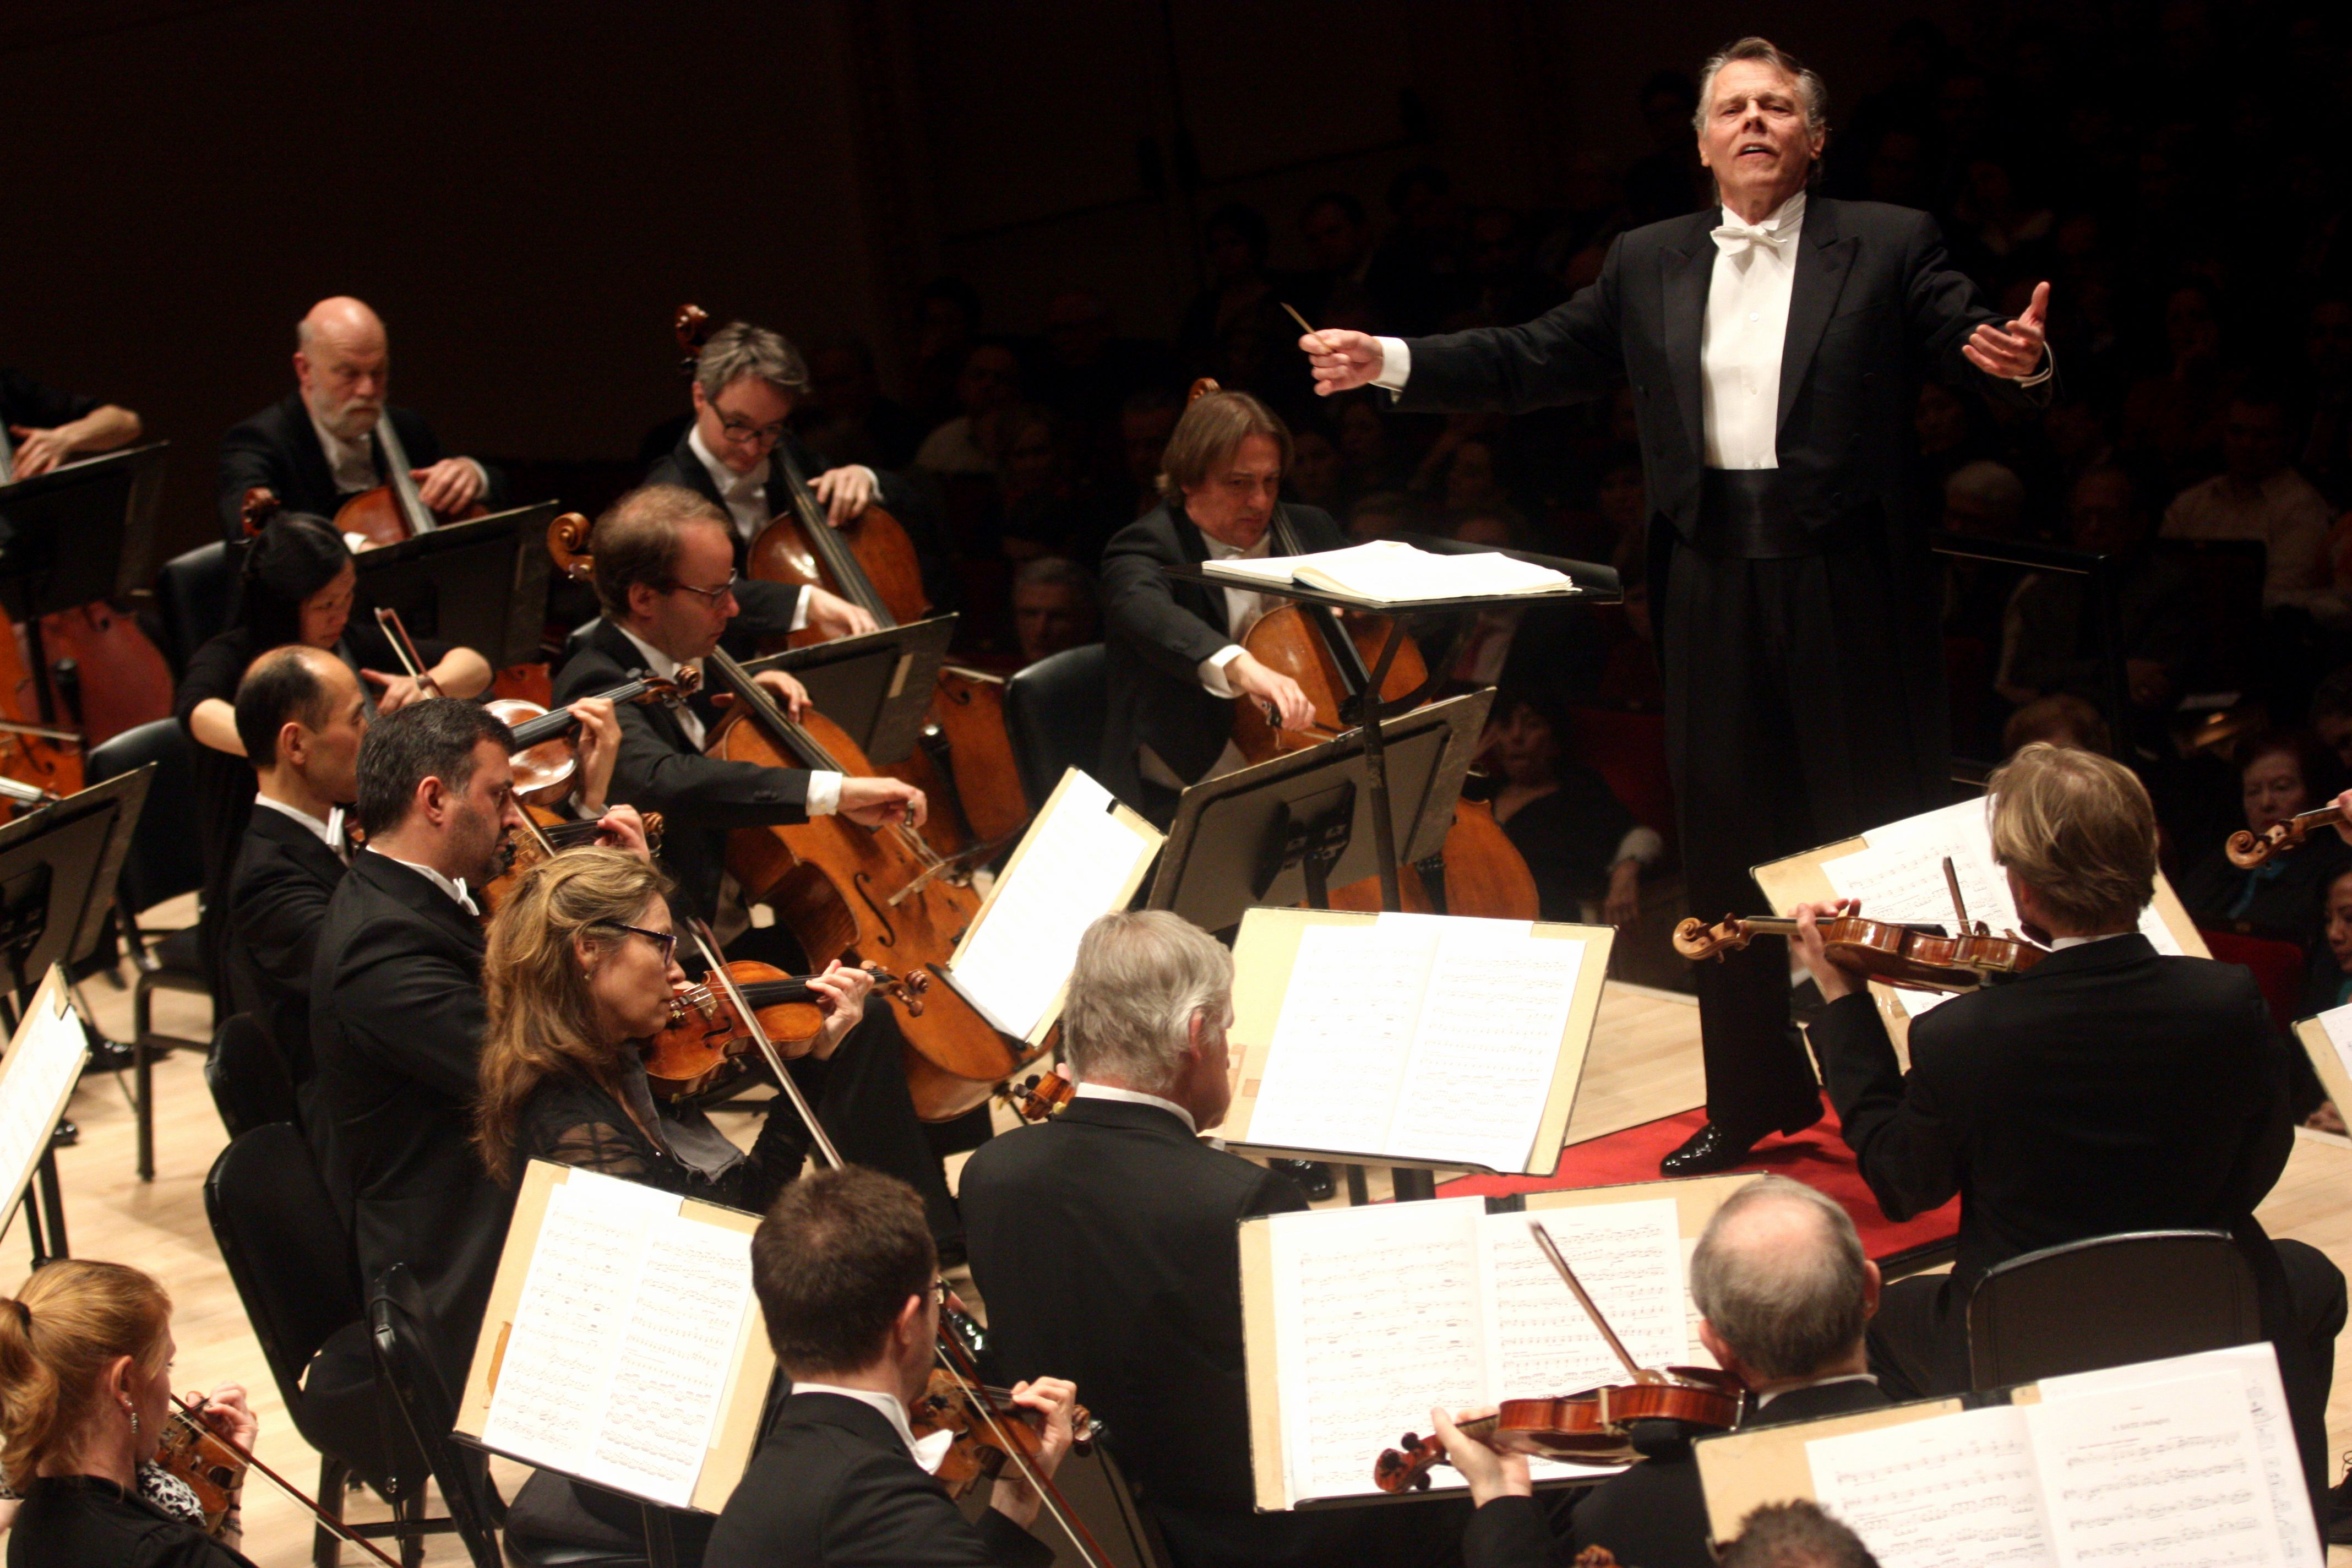 The World's 20 Best Symphony Orchestras